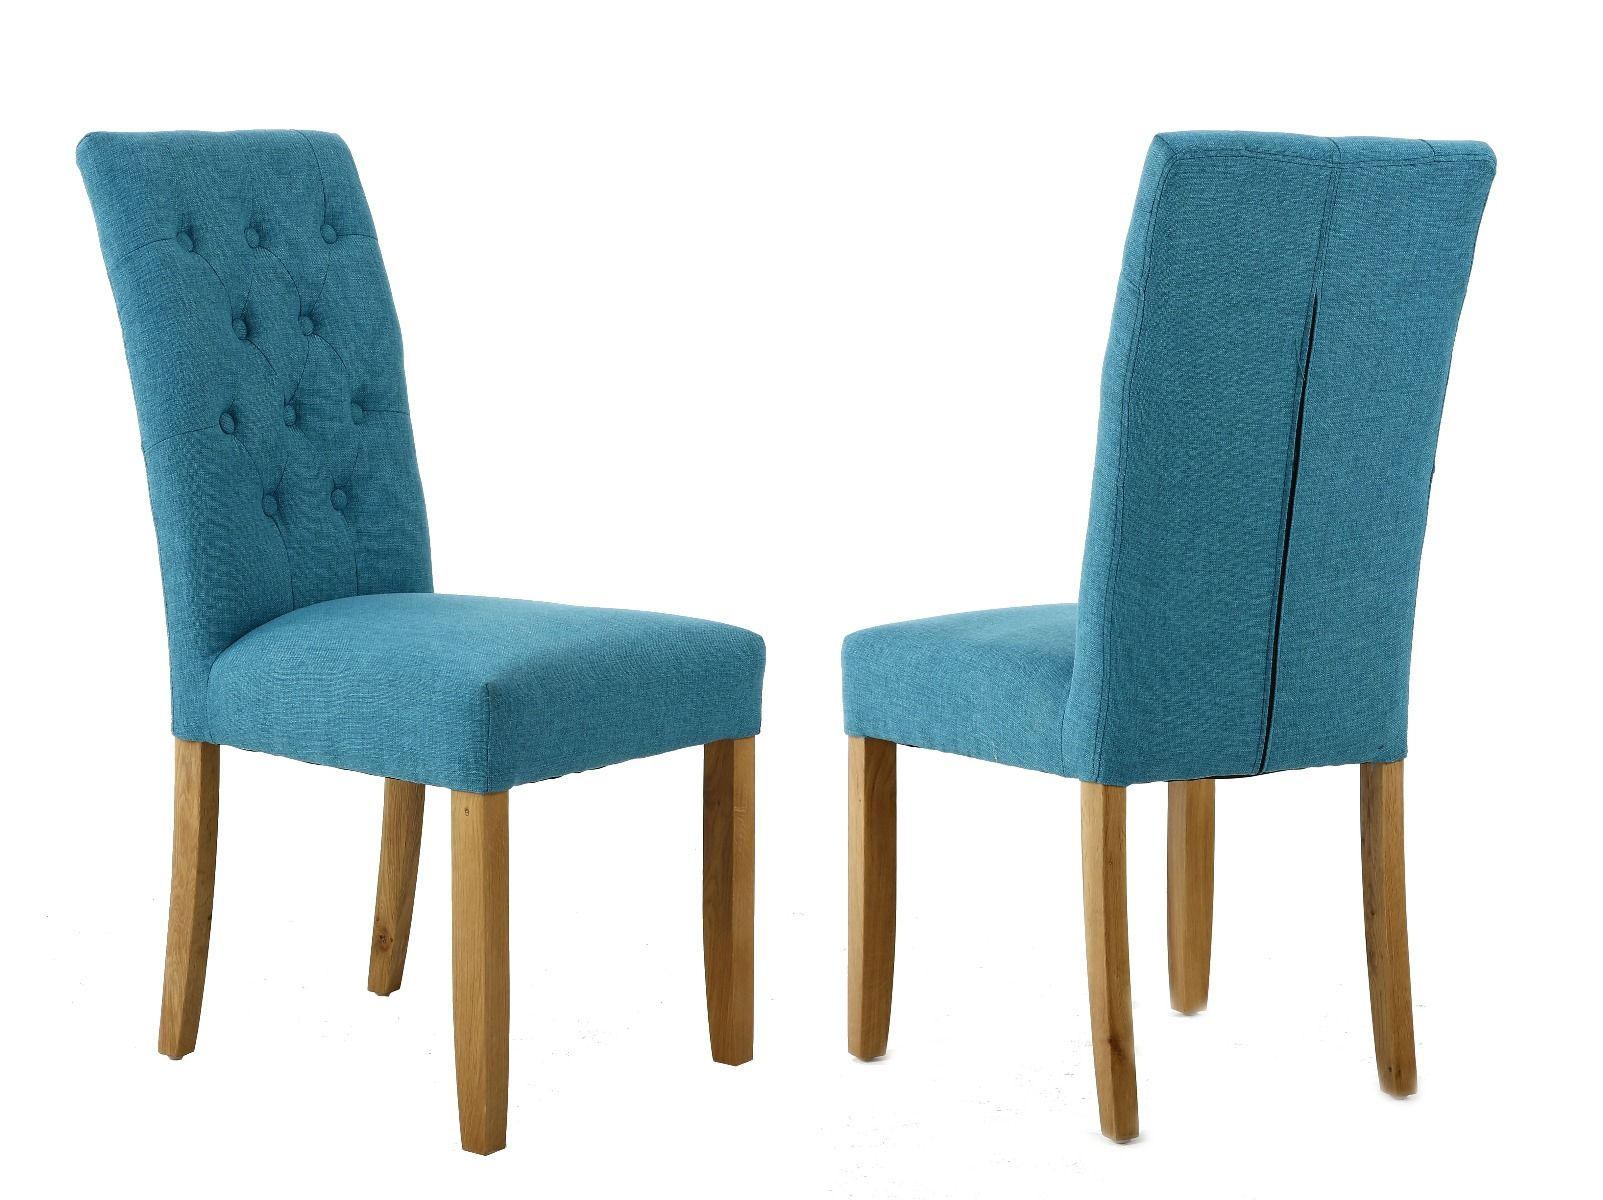 Aqua Dining Chairs Kensington Teal Fabric Dining Chair With Oak Legs